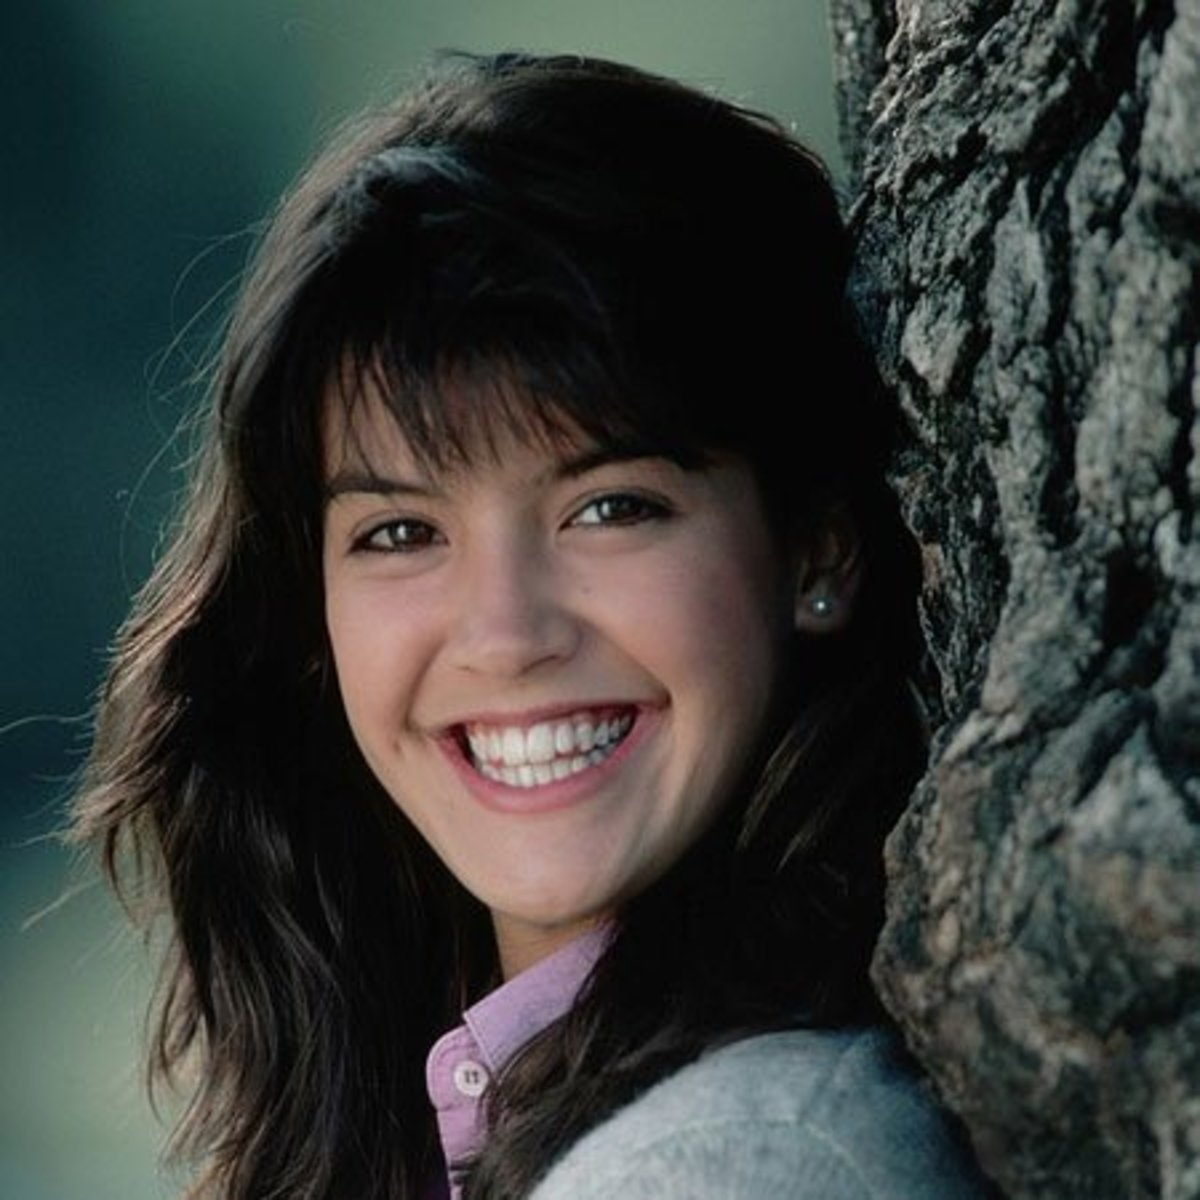 80s Teen Queen, Phoebe Cates